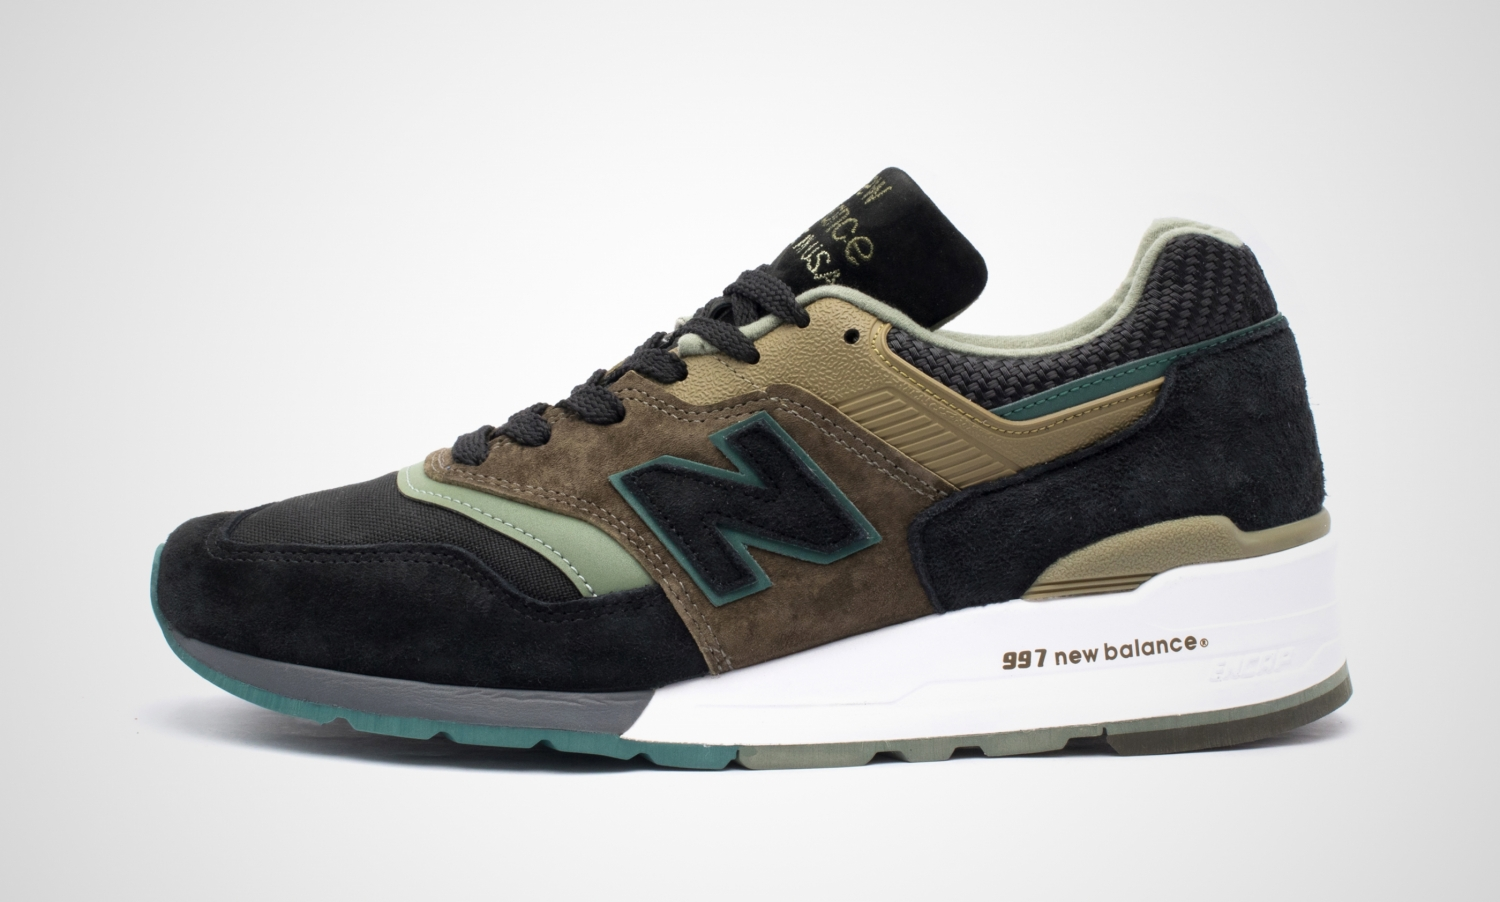 new balance 997 grün · Sneakerkompass